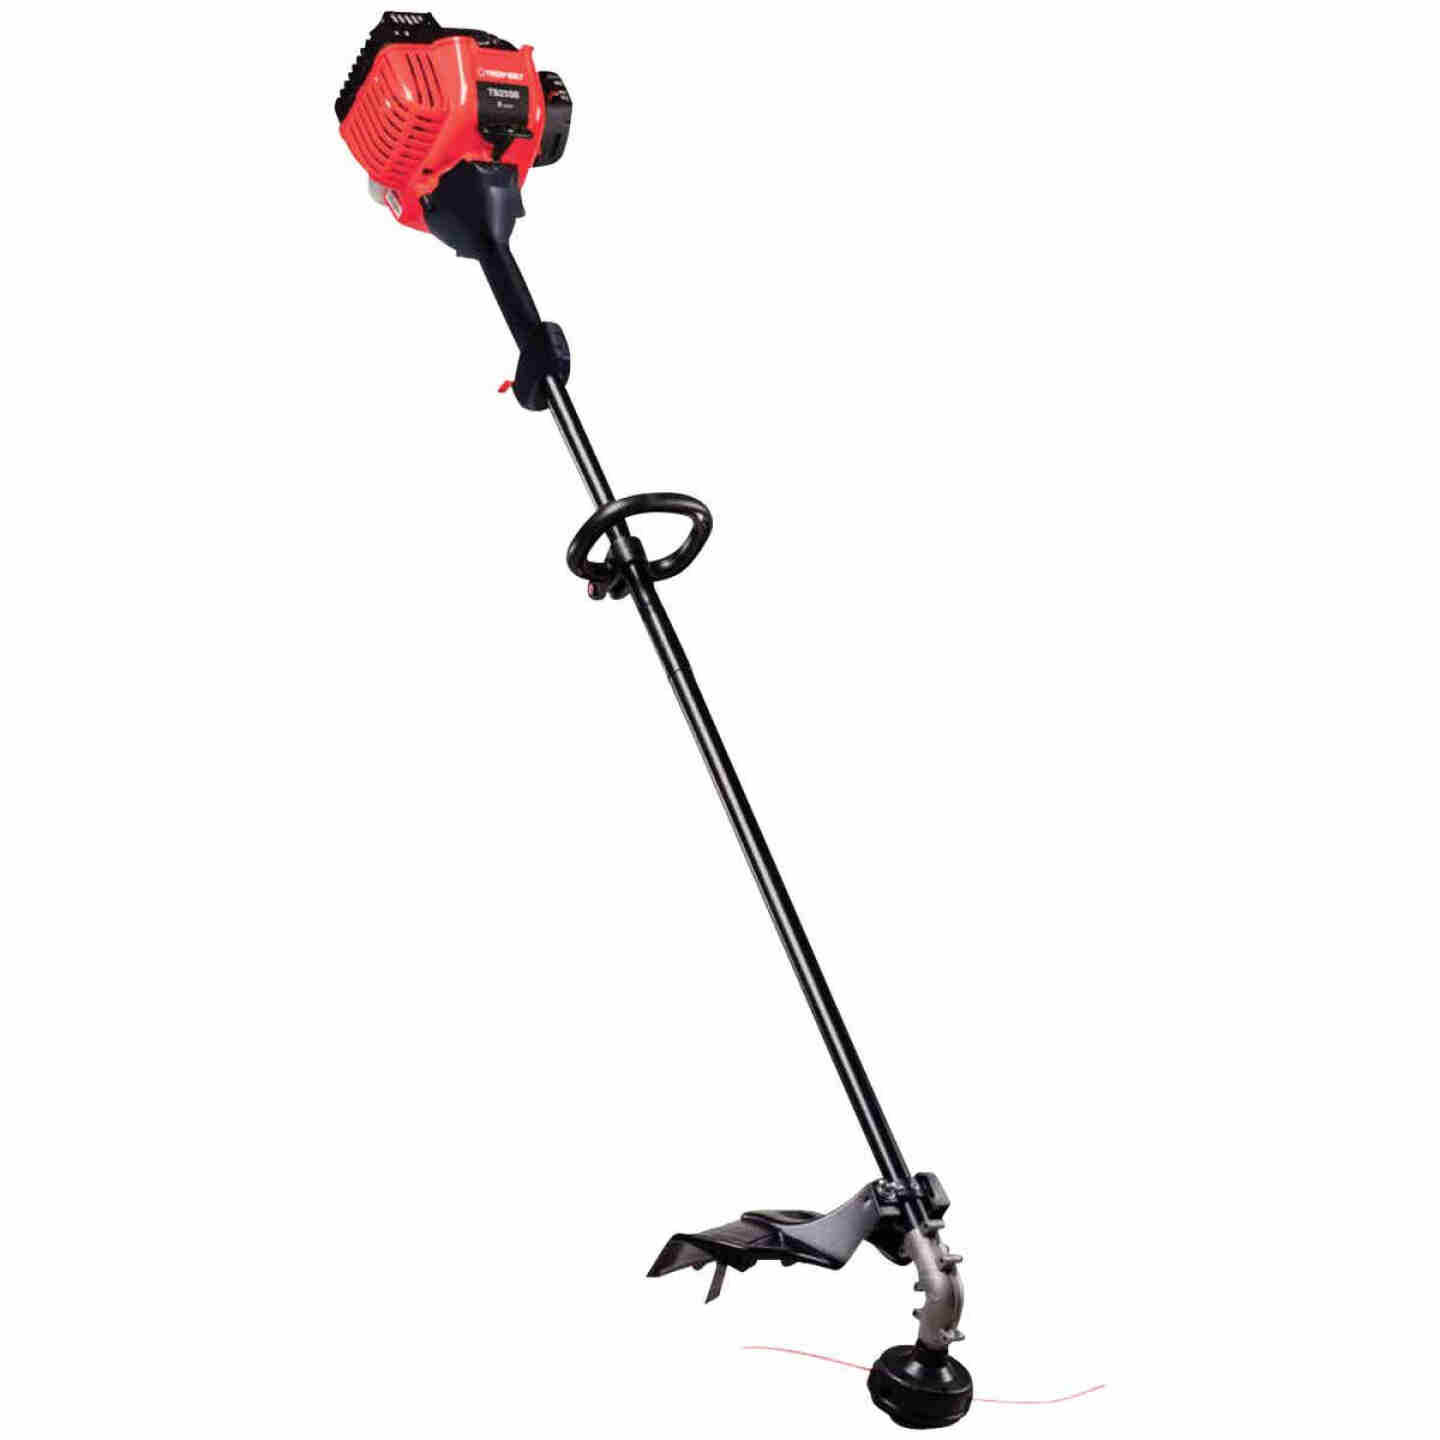 Troy-Bilt TB25SB 25cc 2-Cycle 16 In. Straight Shaft Gas Trimmer Image 1